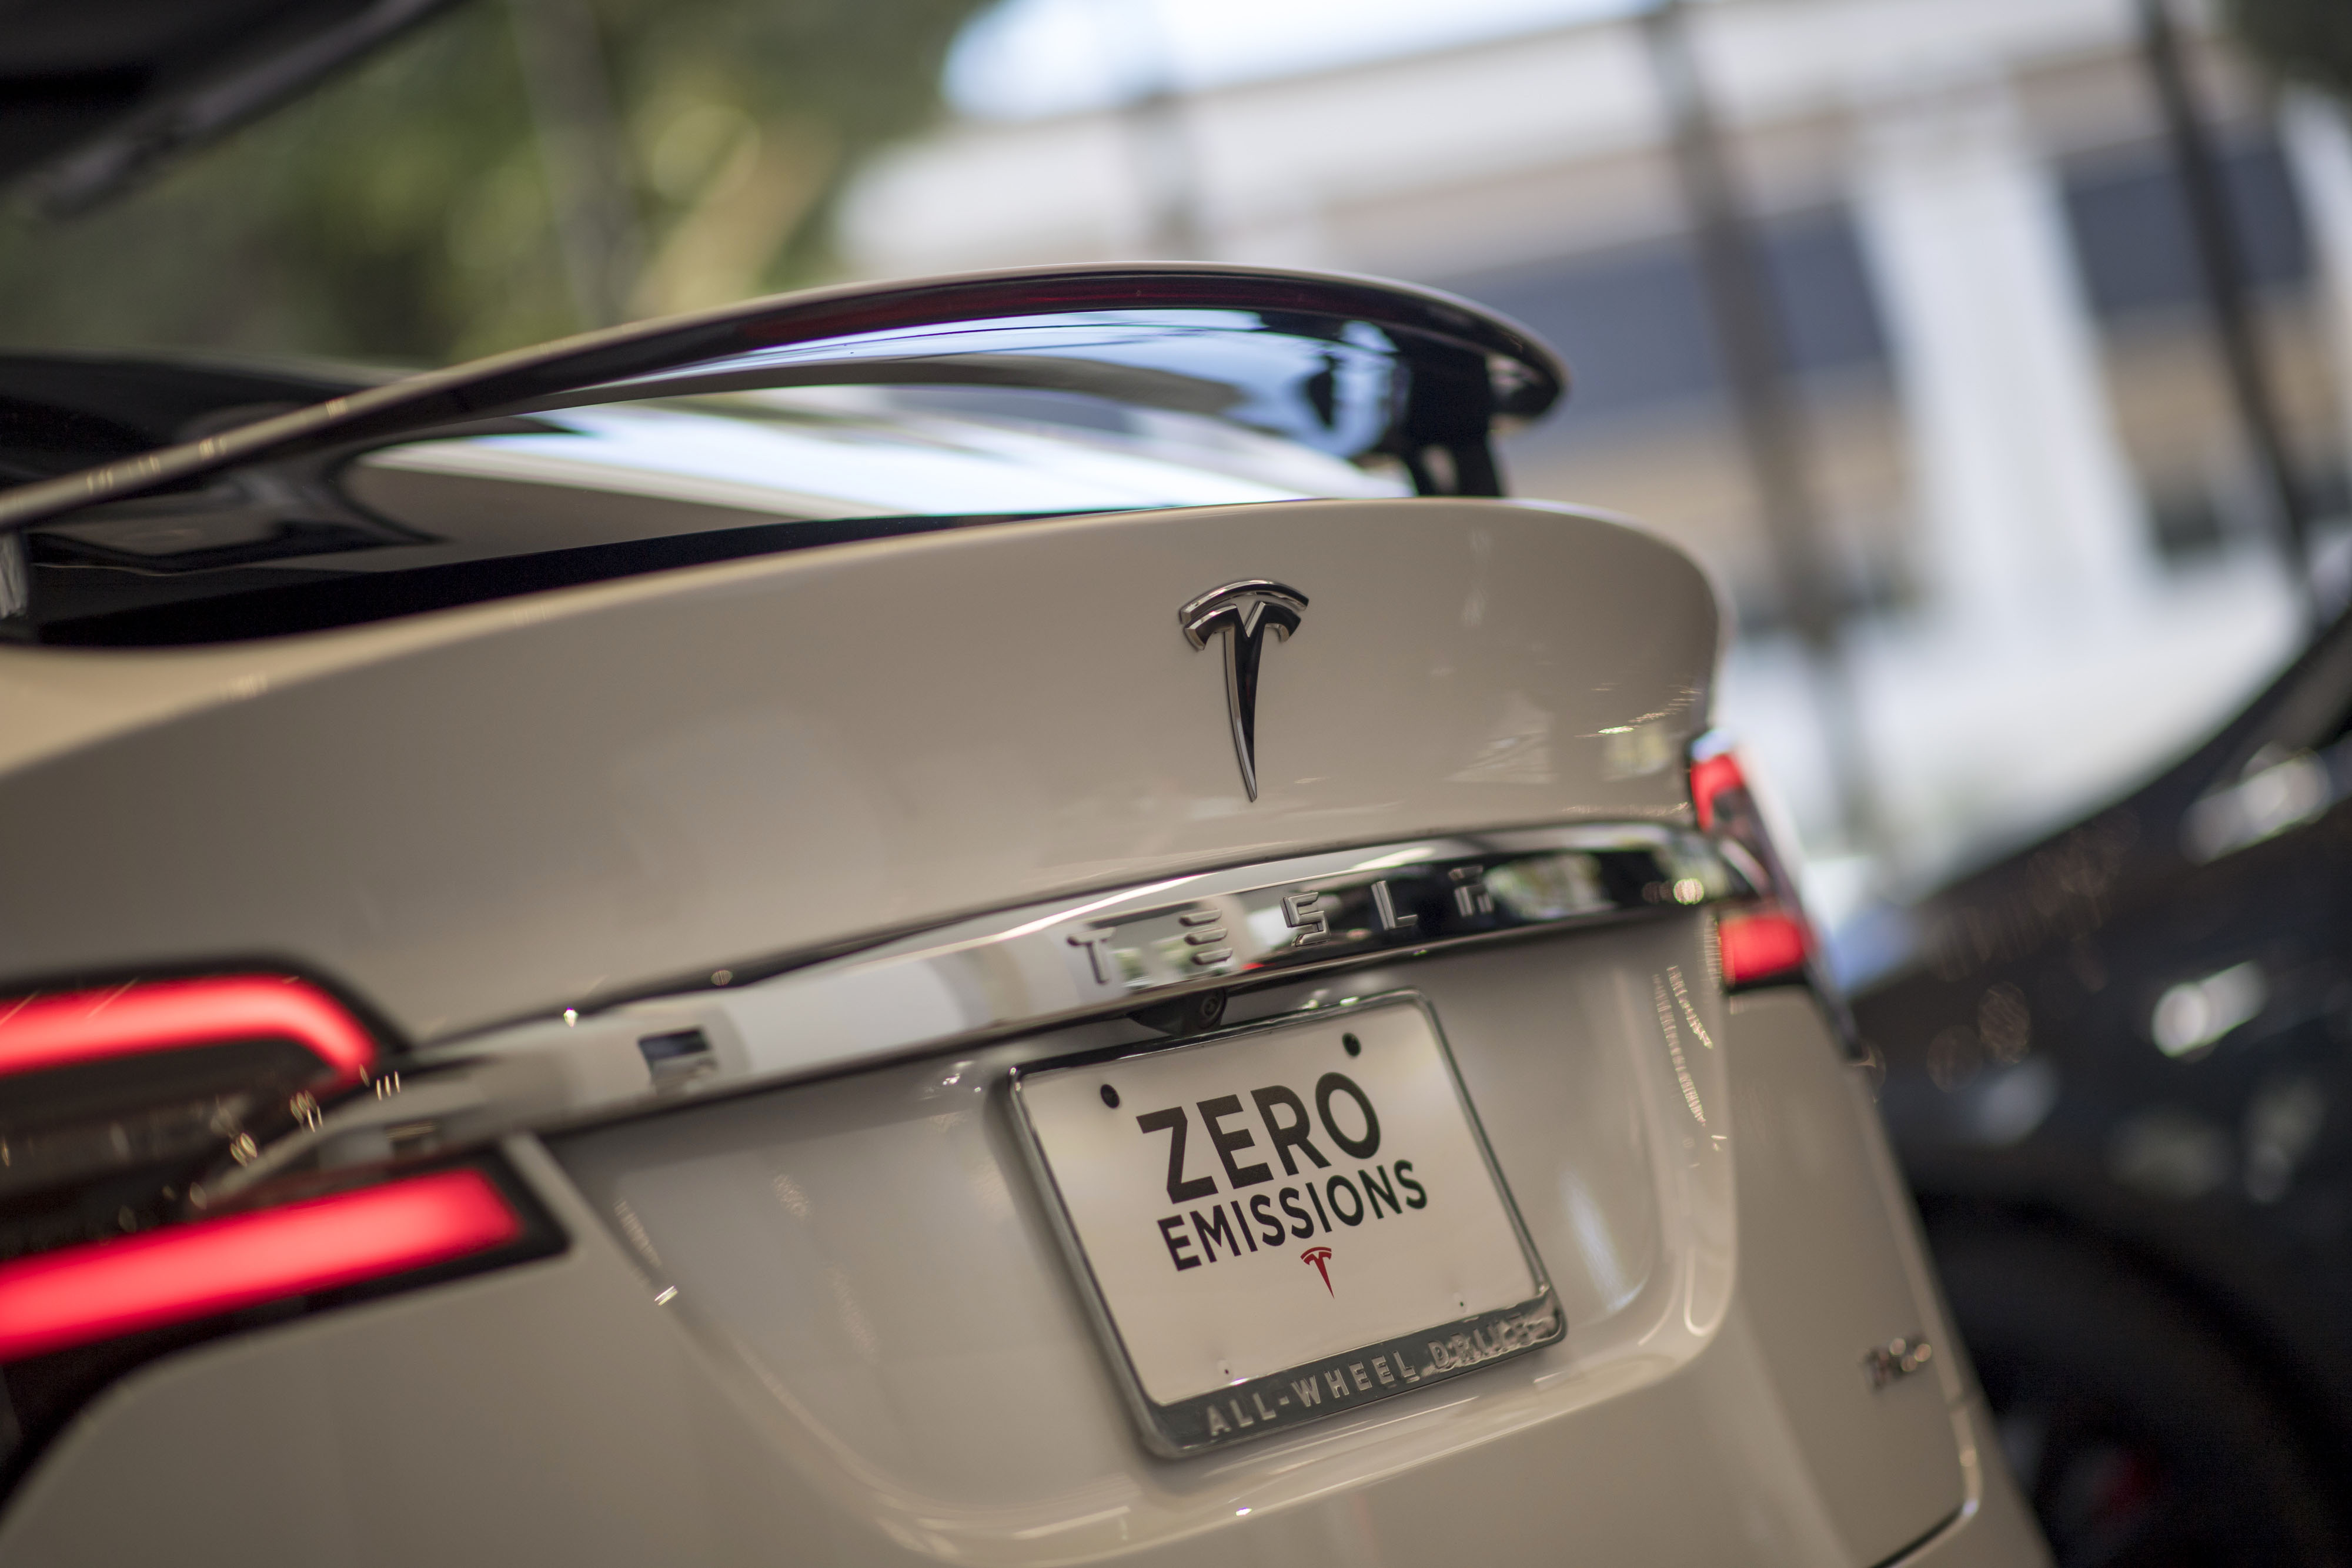 A Tesla Motors Inc. Model S vehicle is displayed at the company's new showroom in San Francisco, California, U.S., on Wednesday, Aug. 10, 2016.